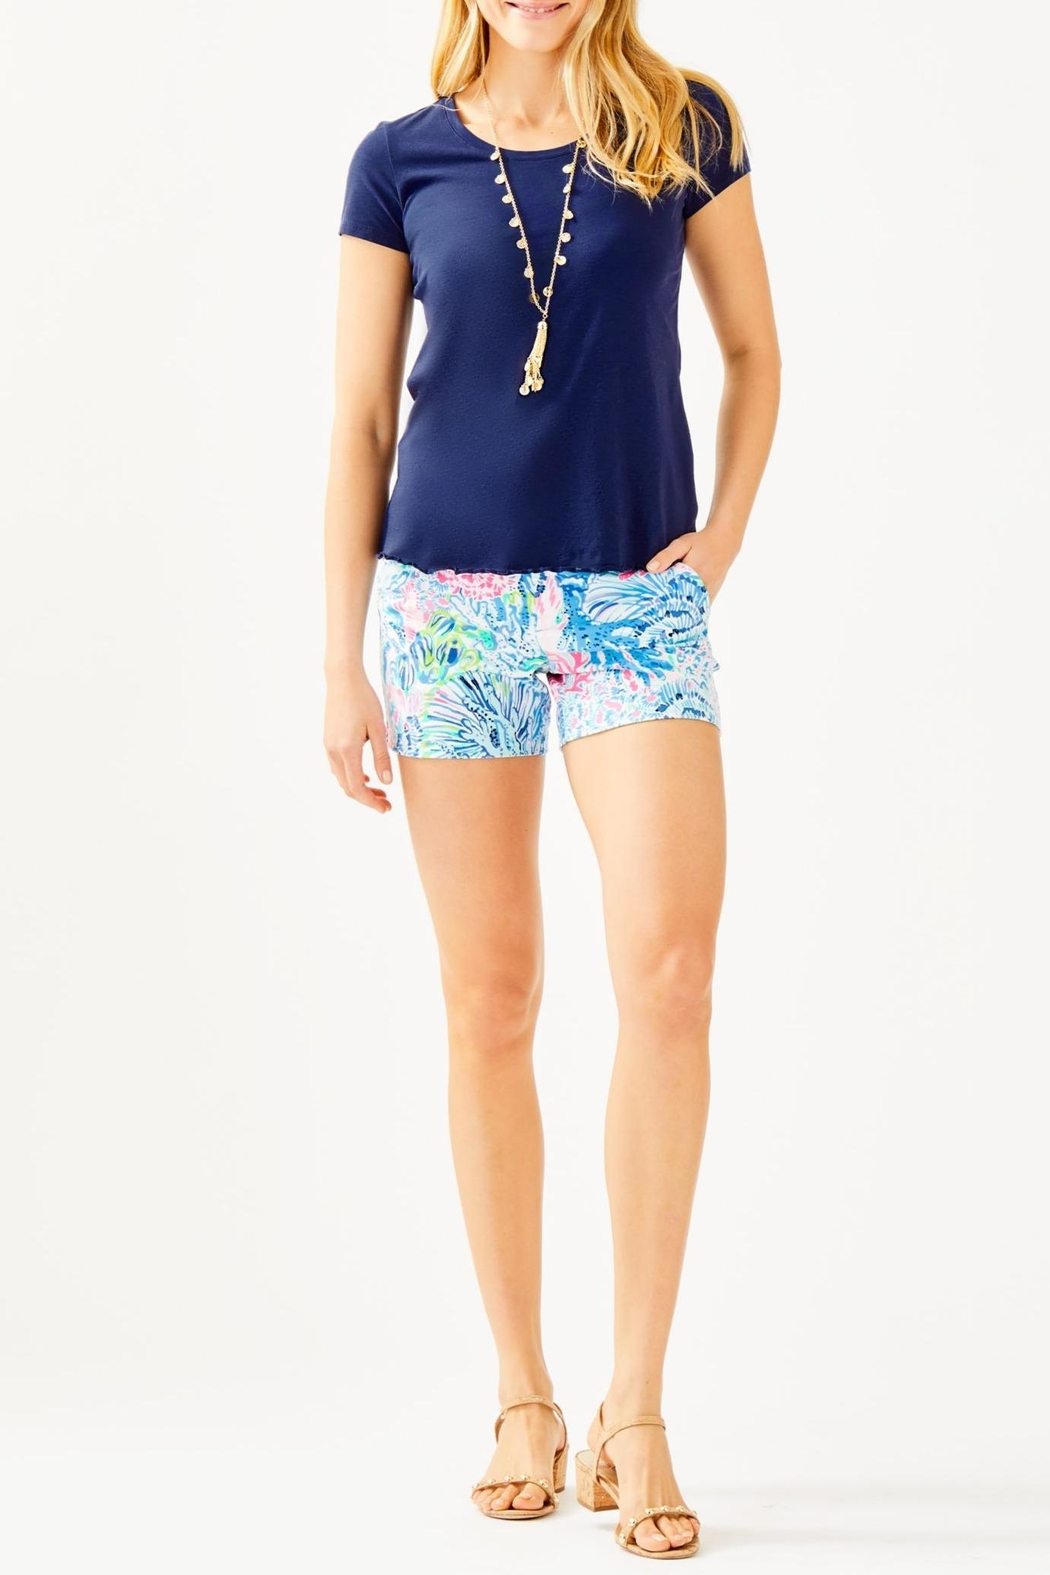 Lilly Pulitzer Mari Top - Side Cropped Image